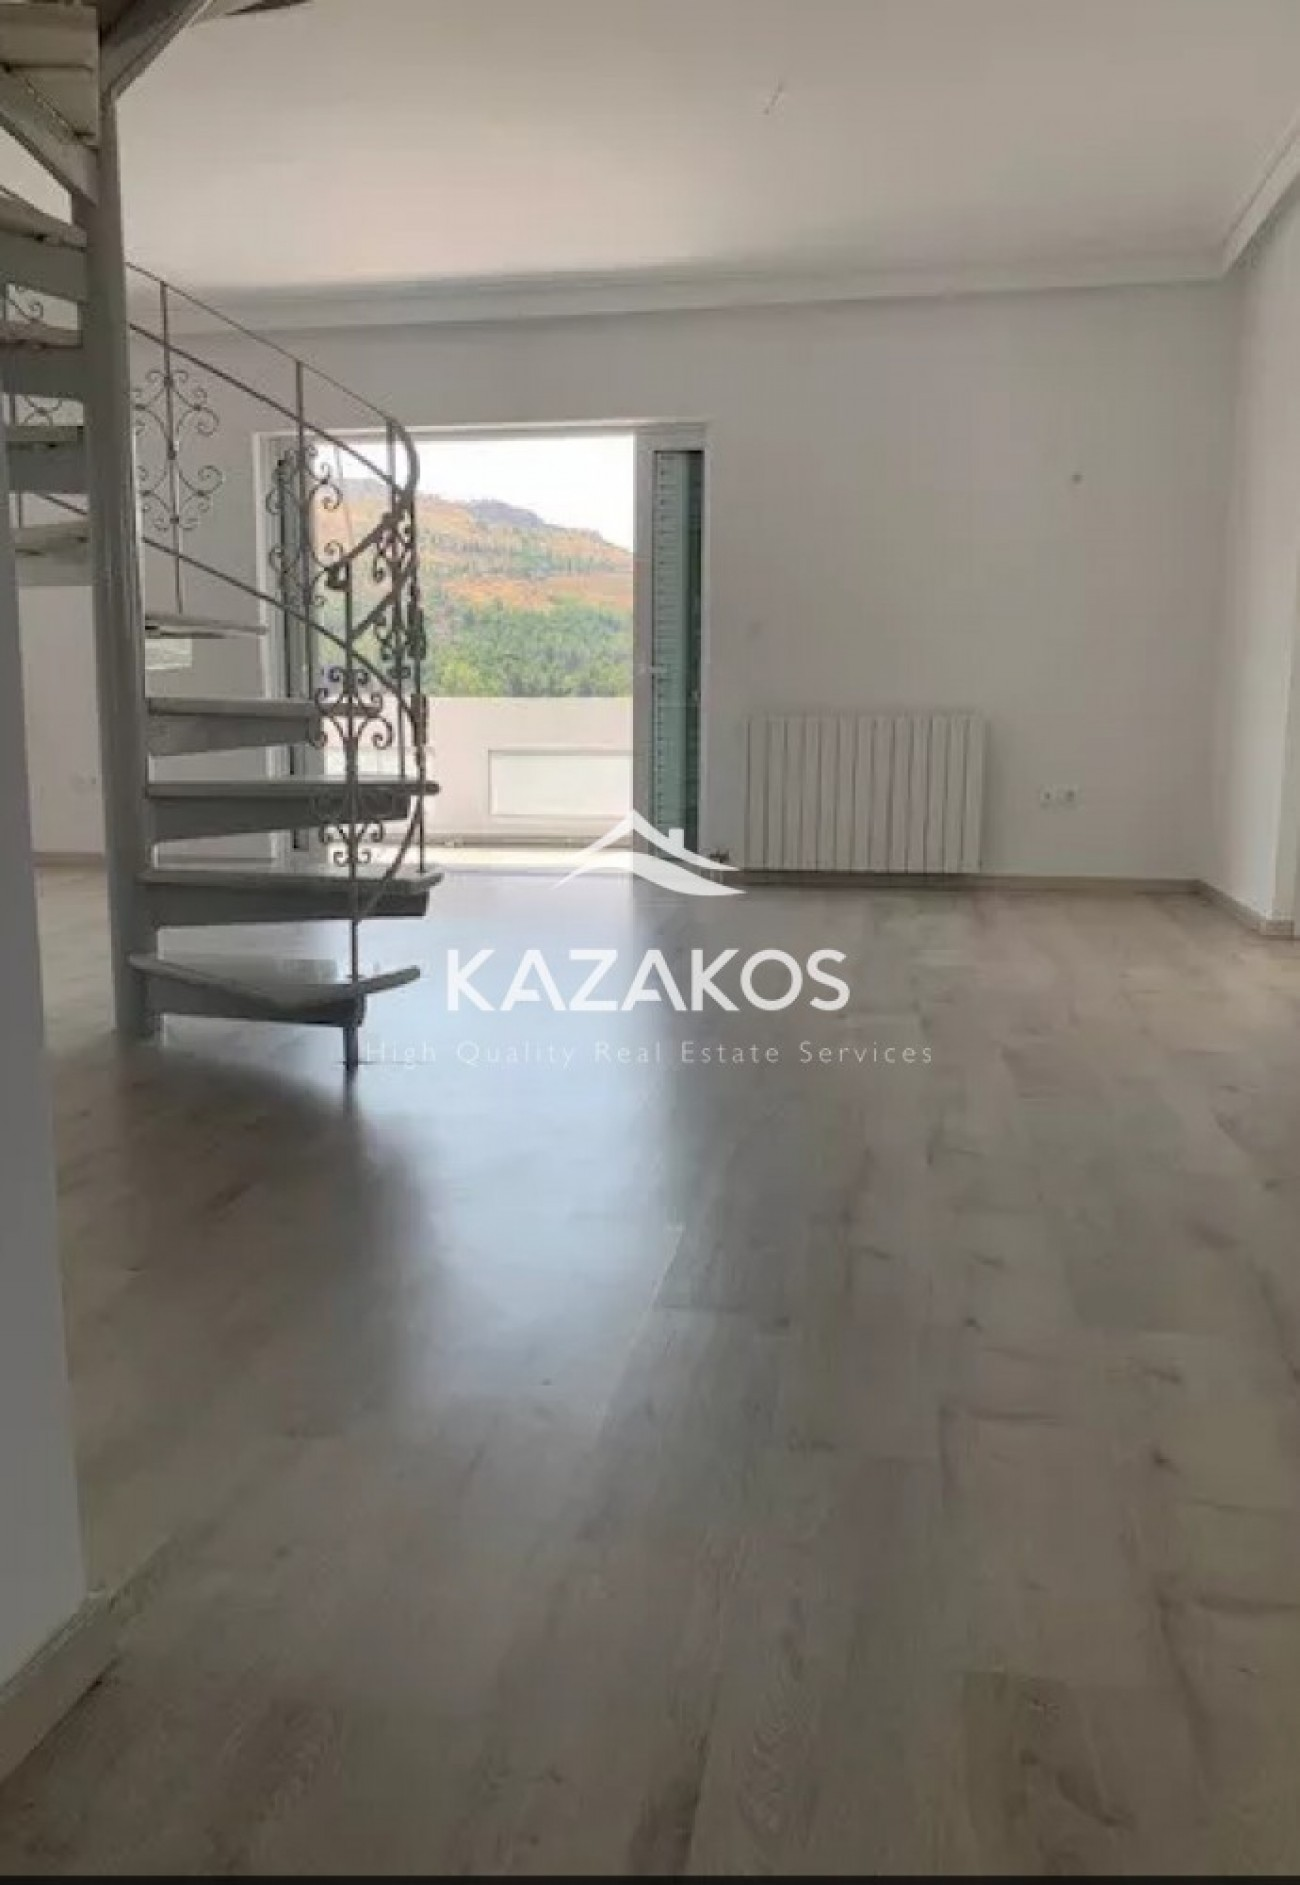 Maisonette for Sale in Nea Ionia, Central & West Region of Athens, Greece